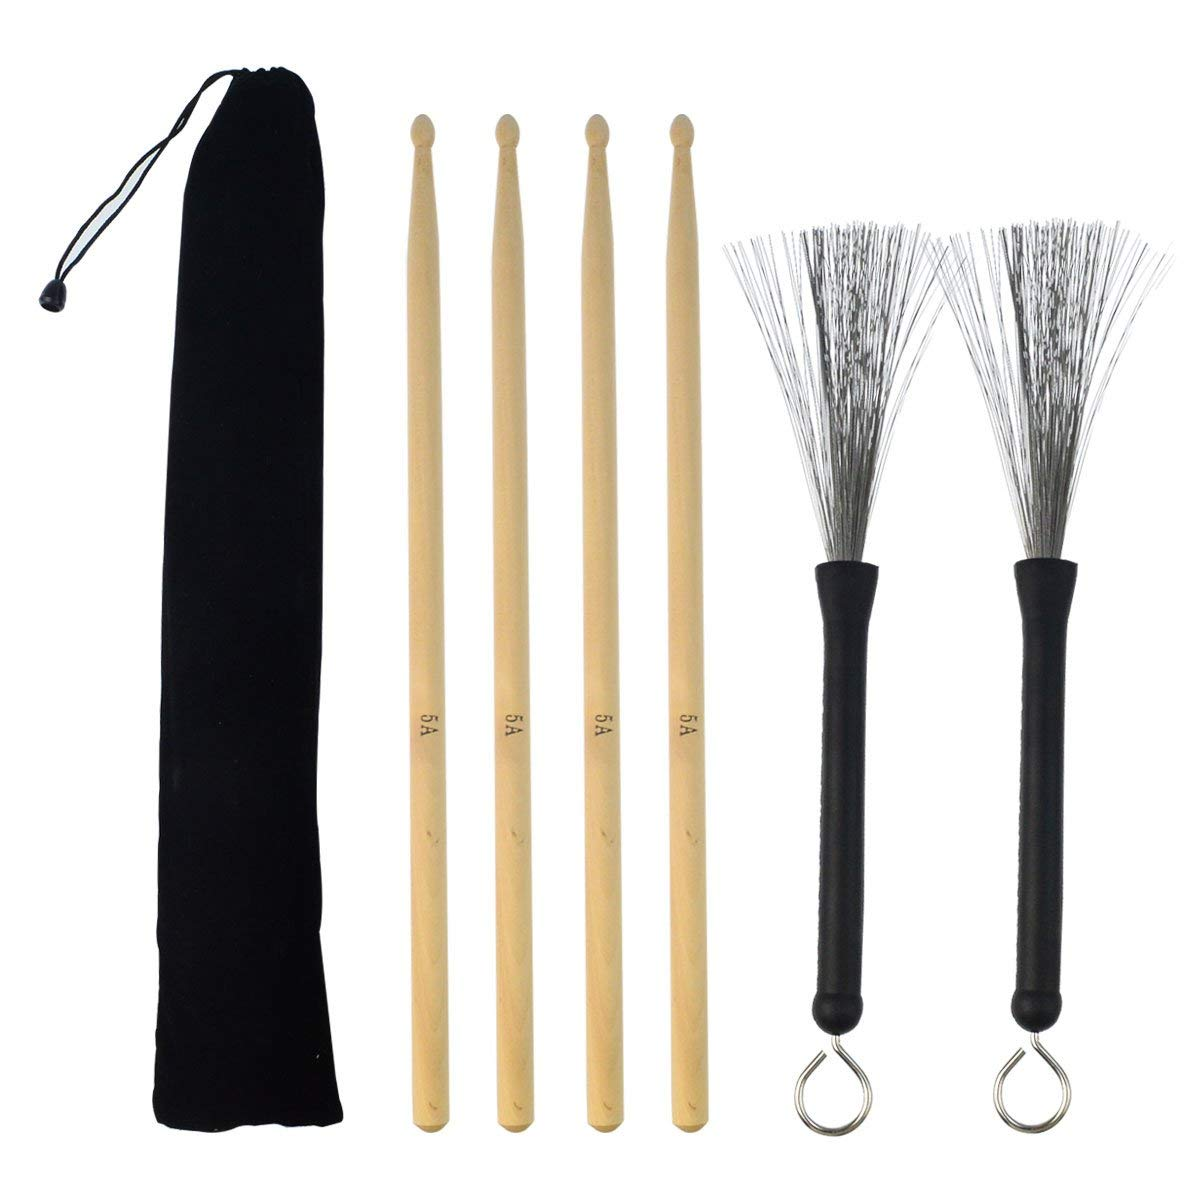 2 Pair 5A Drum Sticks and 1 Pair Drum Wire Brushes, Wobe Classic Maple Wood Drumsticks Sets Retractable Drum Sticks Brush with Storage Bag Student Drum Sticks